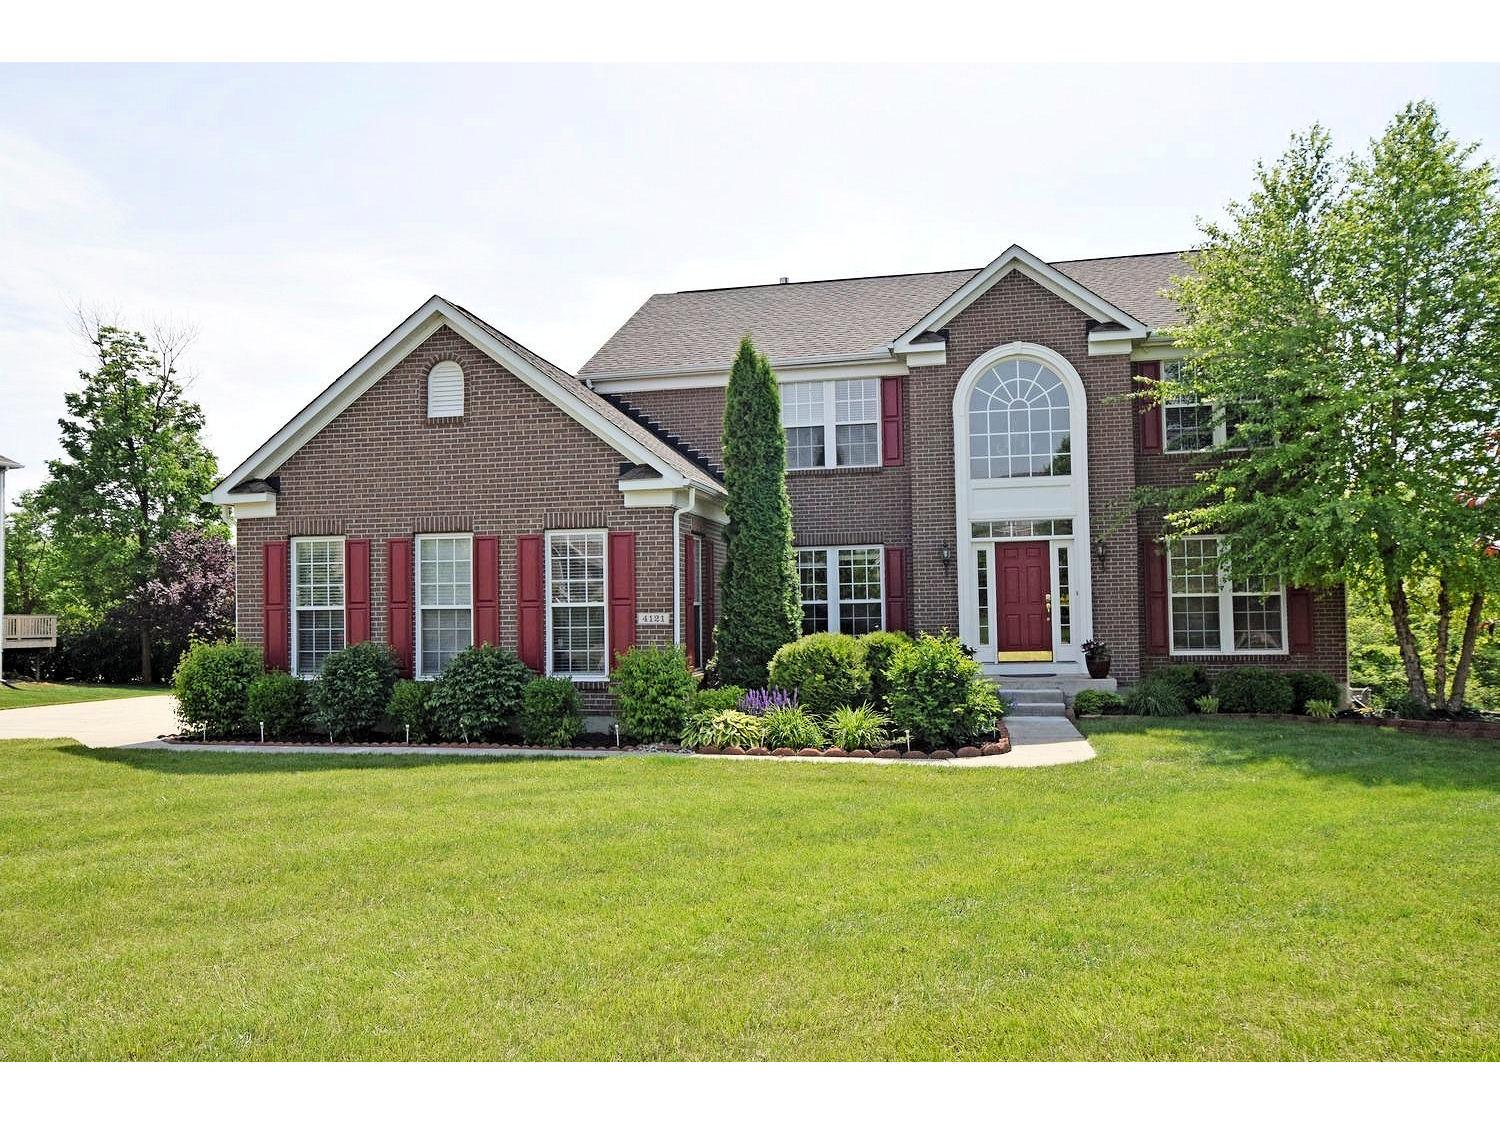 4121 Marble Ridge Lane, Mason, OH 45040